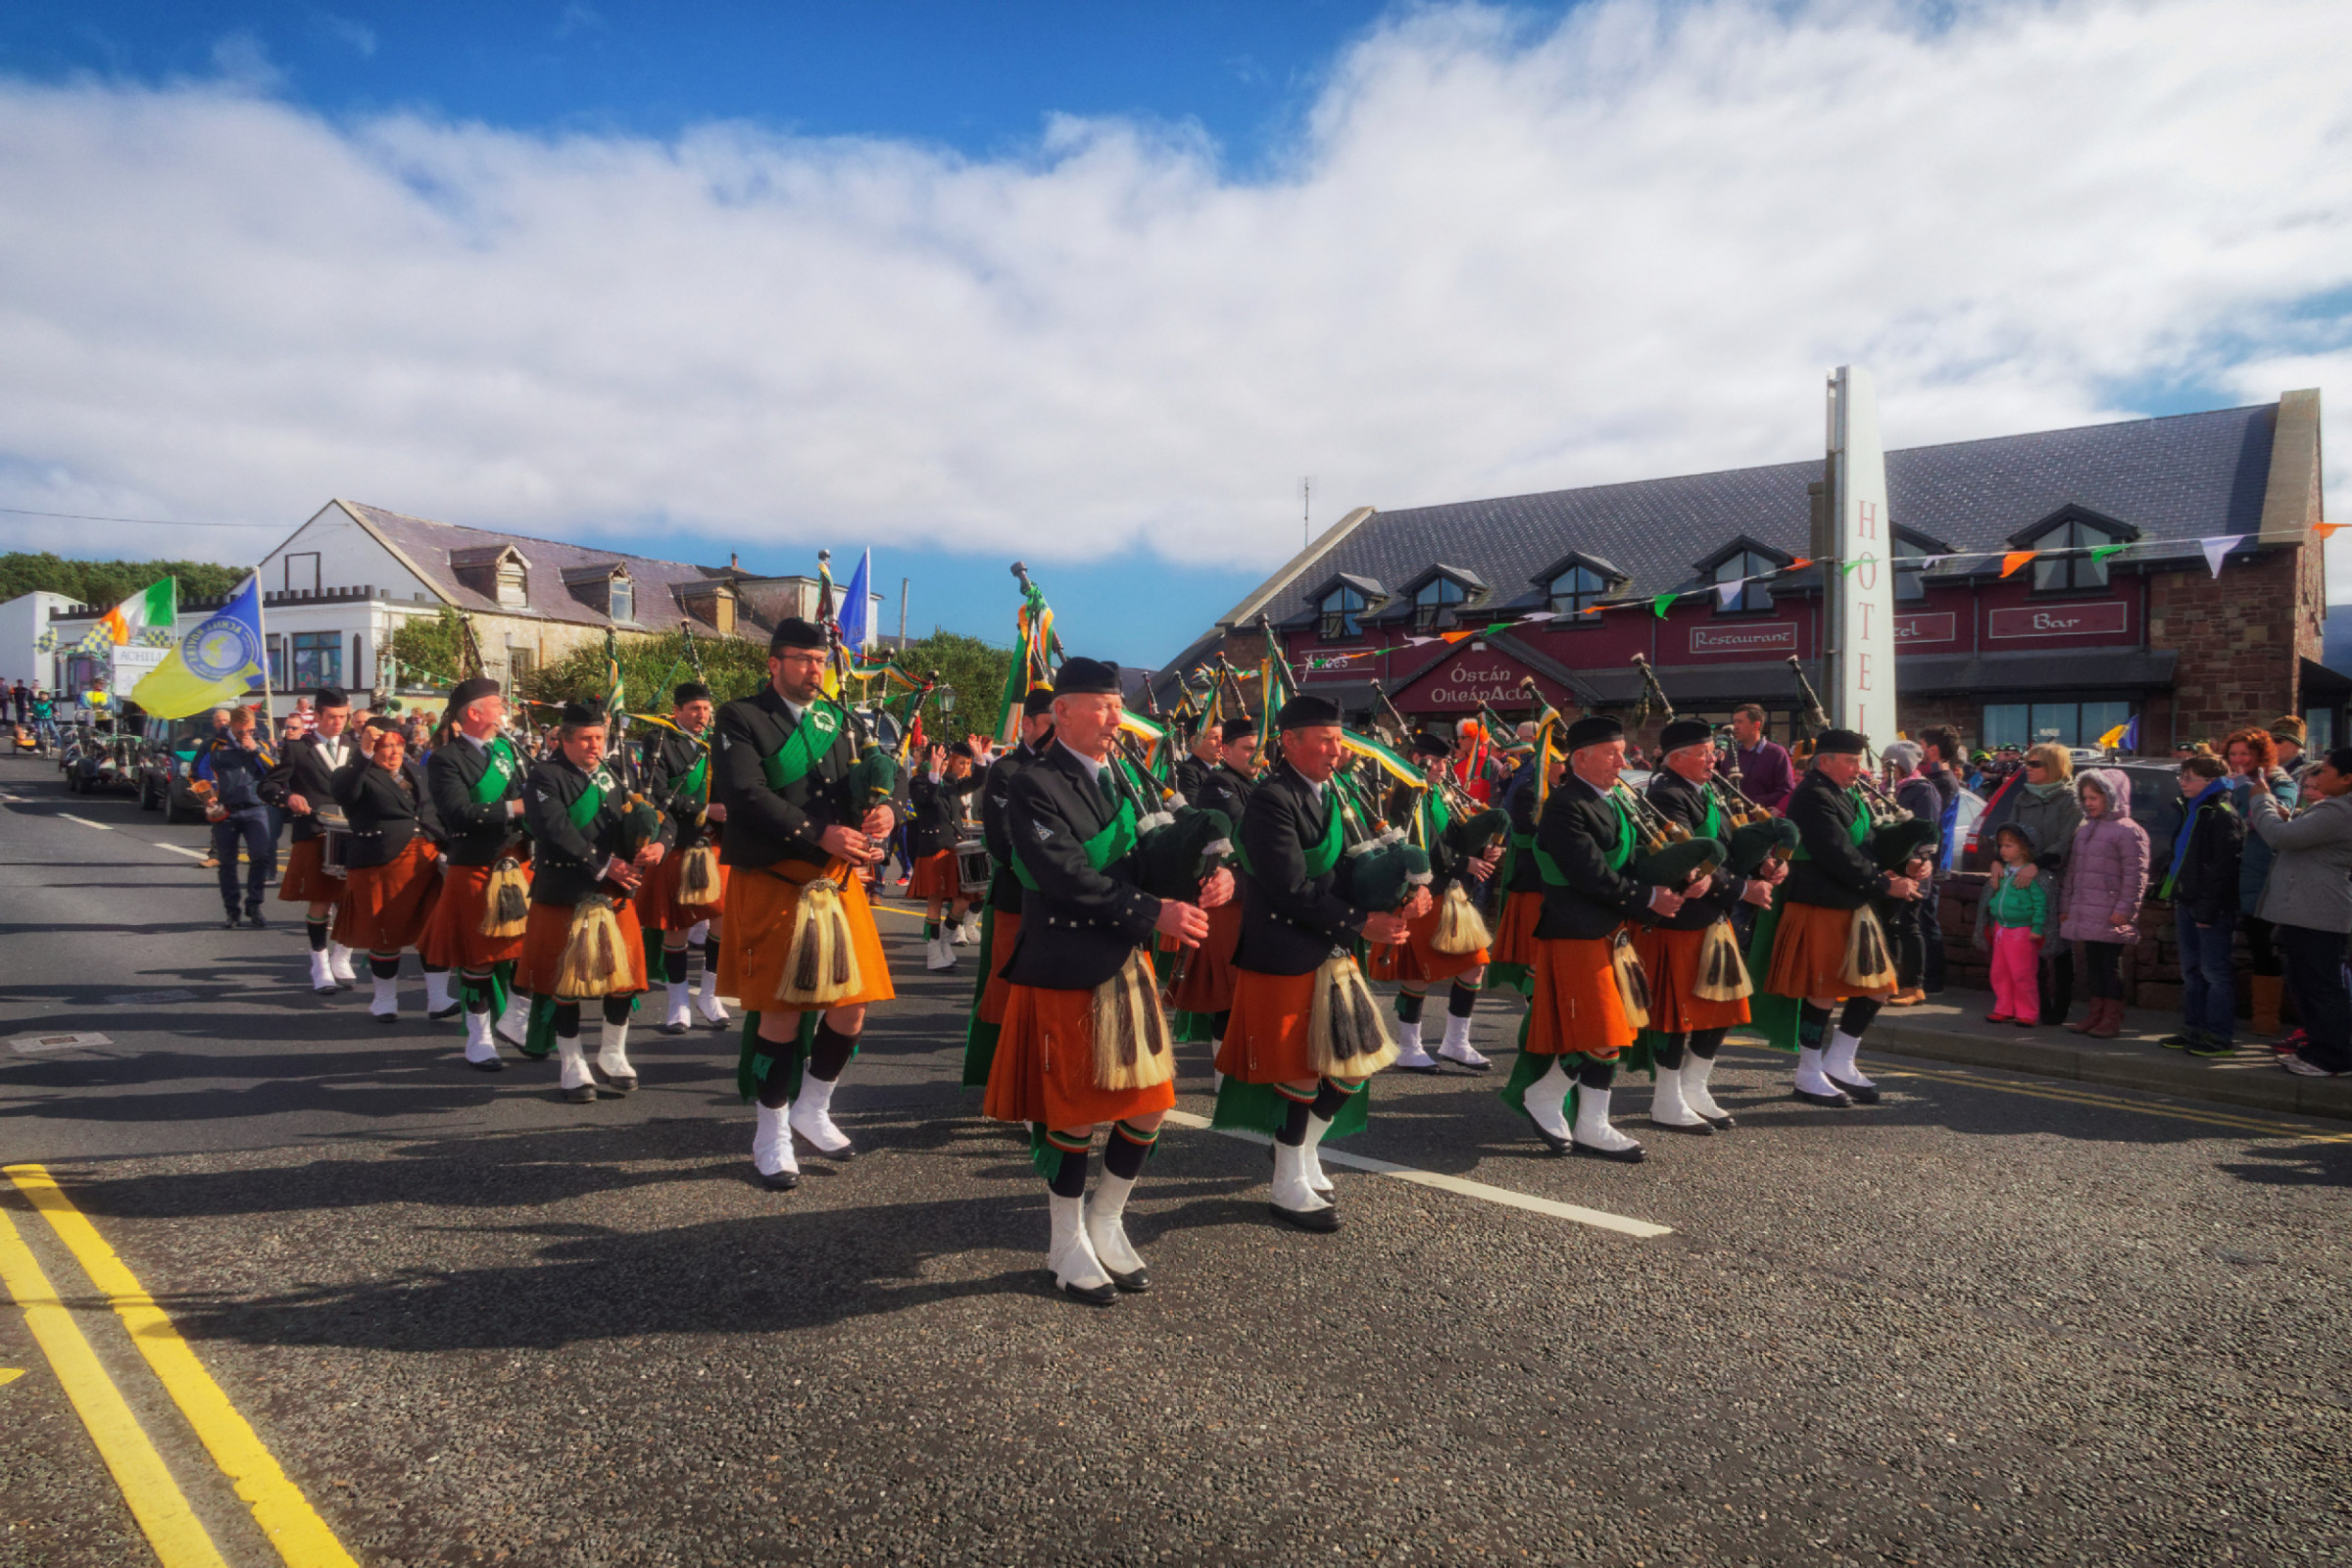 20160320125621-ie-achill-sound_parade-_DxO_13in_DxO96